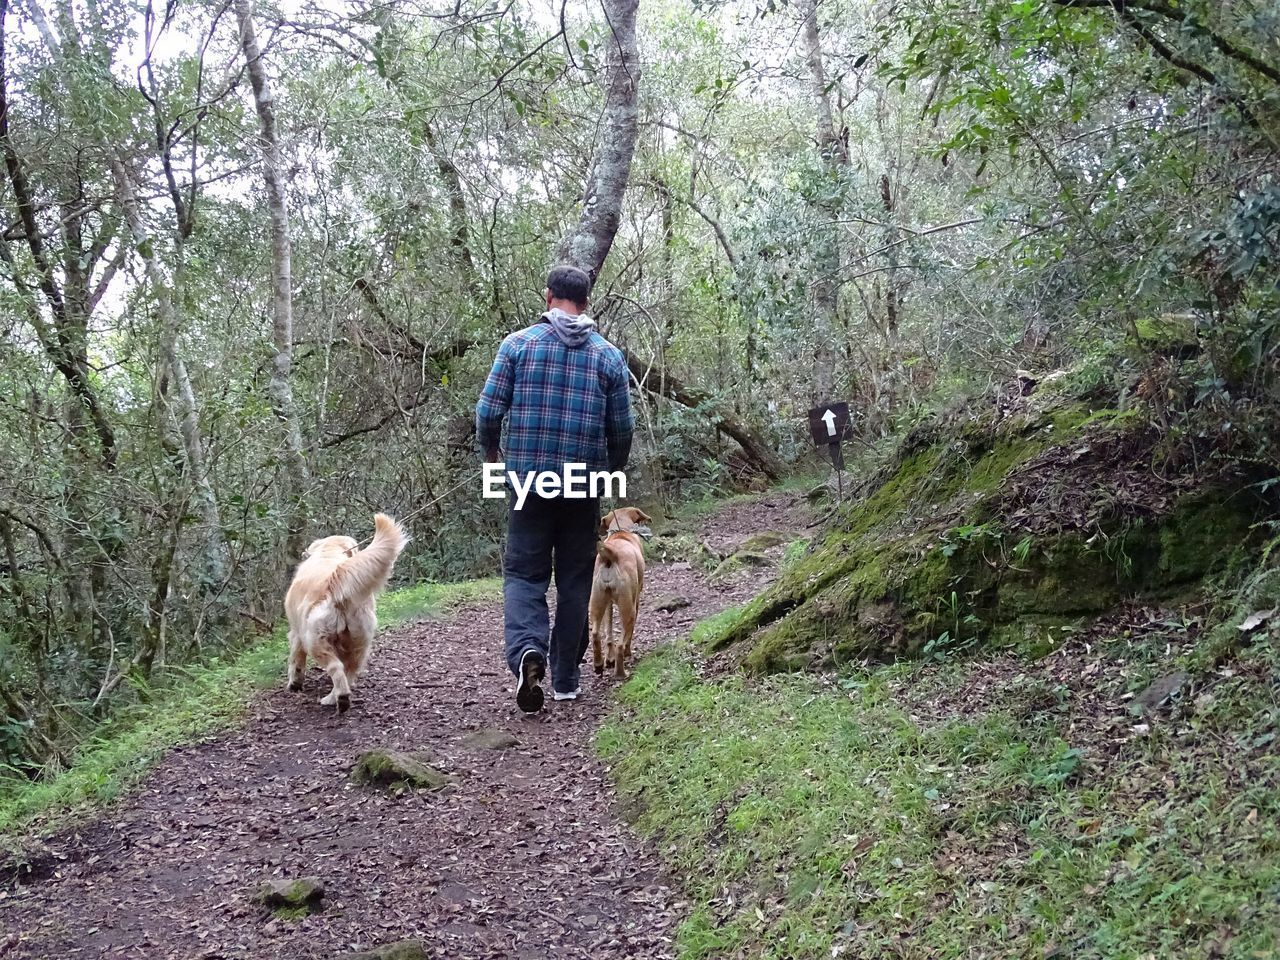 mammal, domestic, pets, domestic animals, animal themes, animal, tree, dog, canine, one animal, rear view, real people, plant, vertebrate, land, leisure activity, full length, walking, forest, one person, pet owner, outdoors